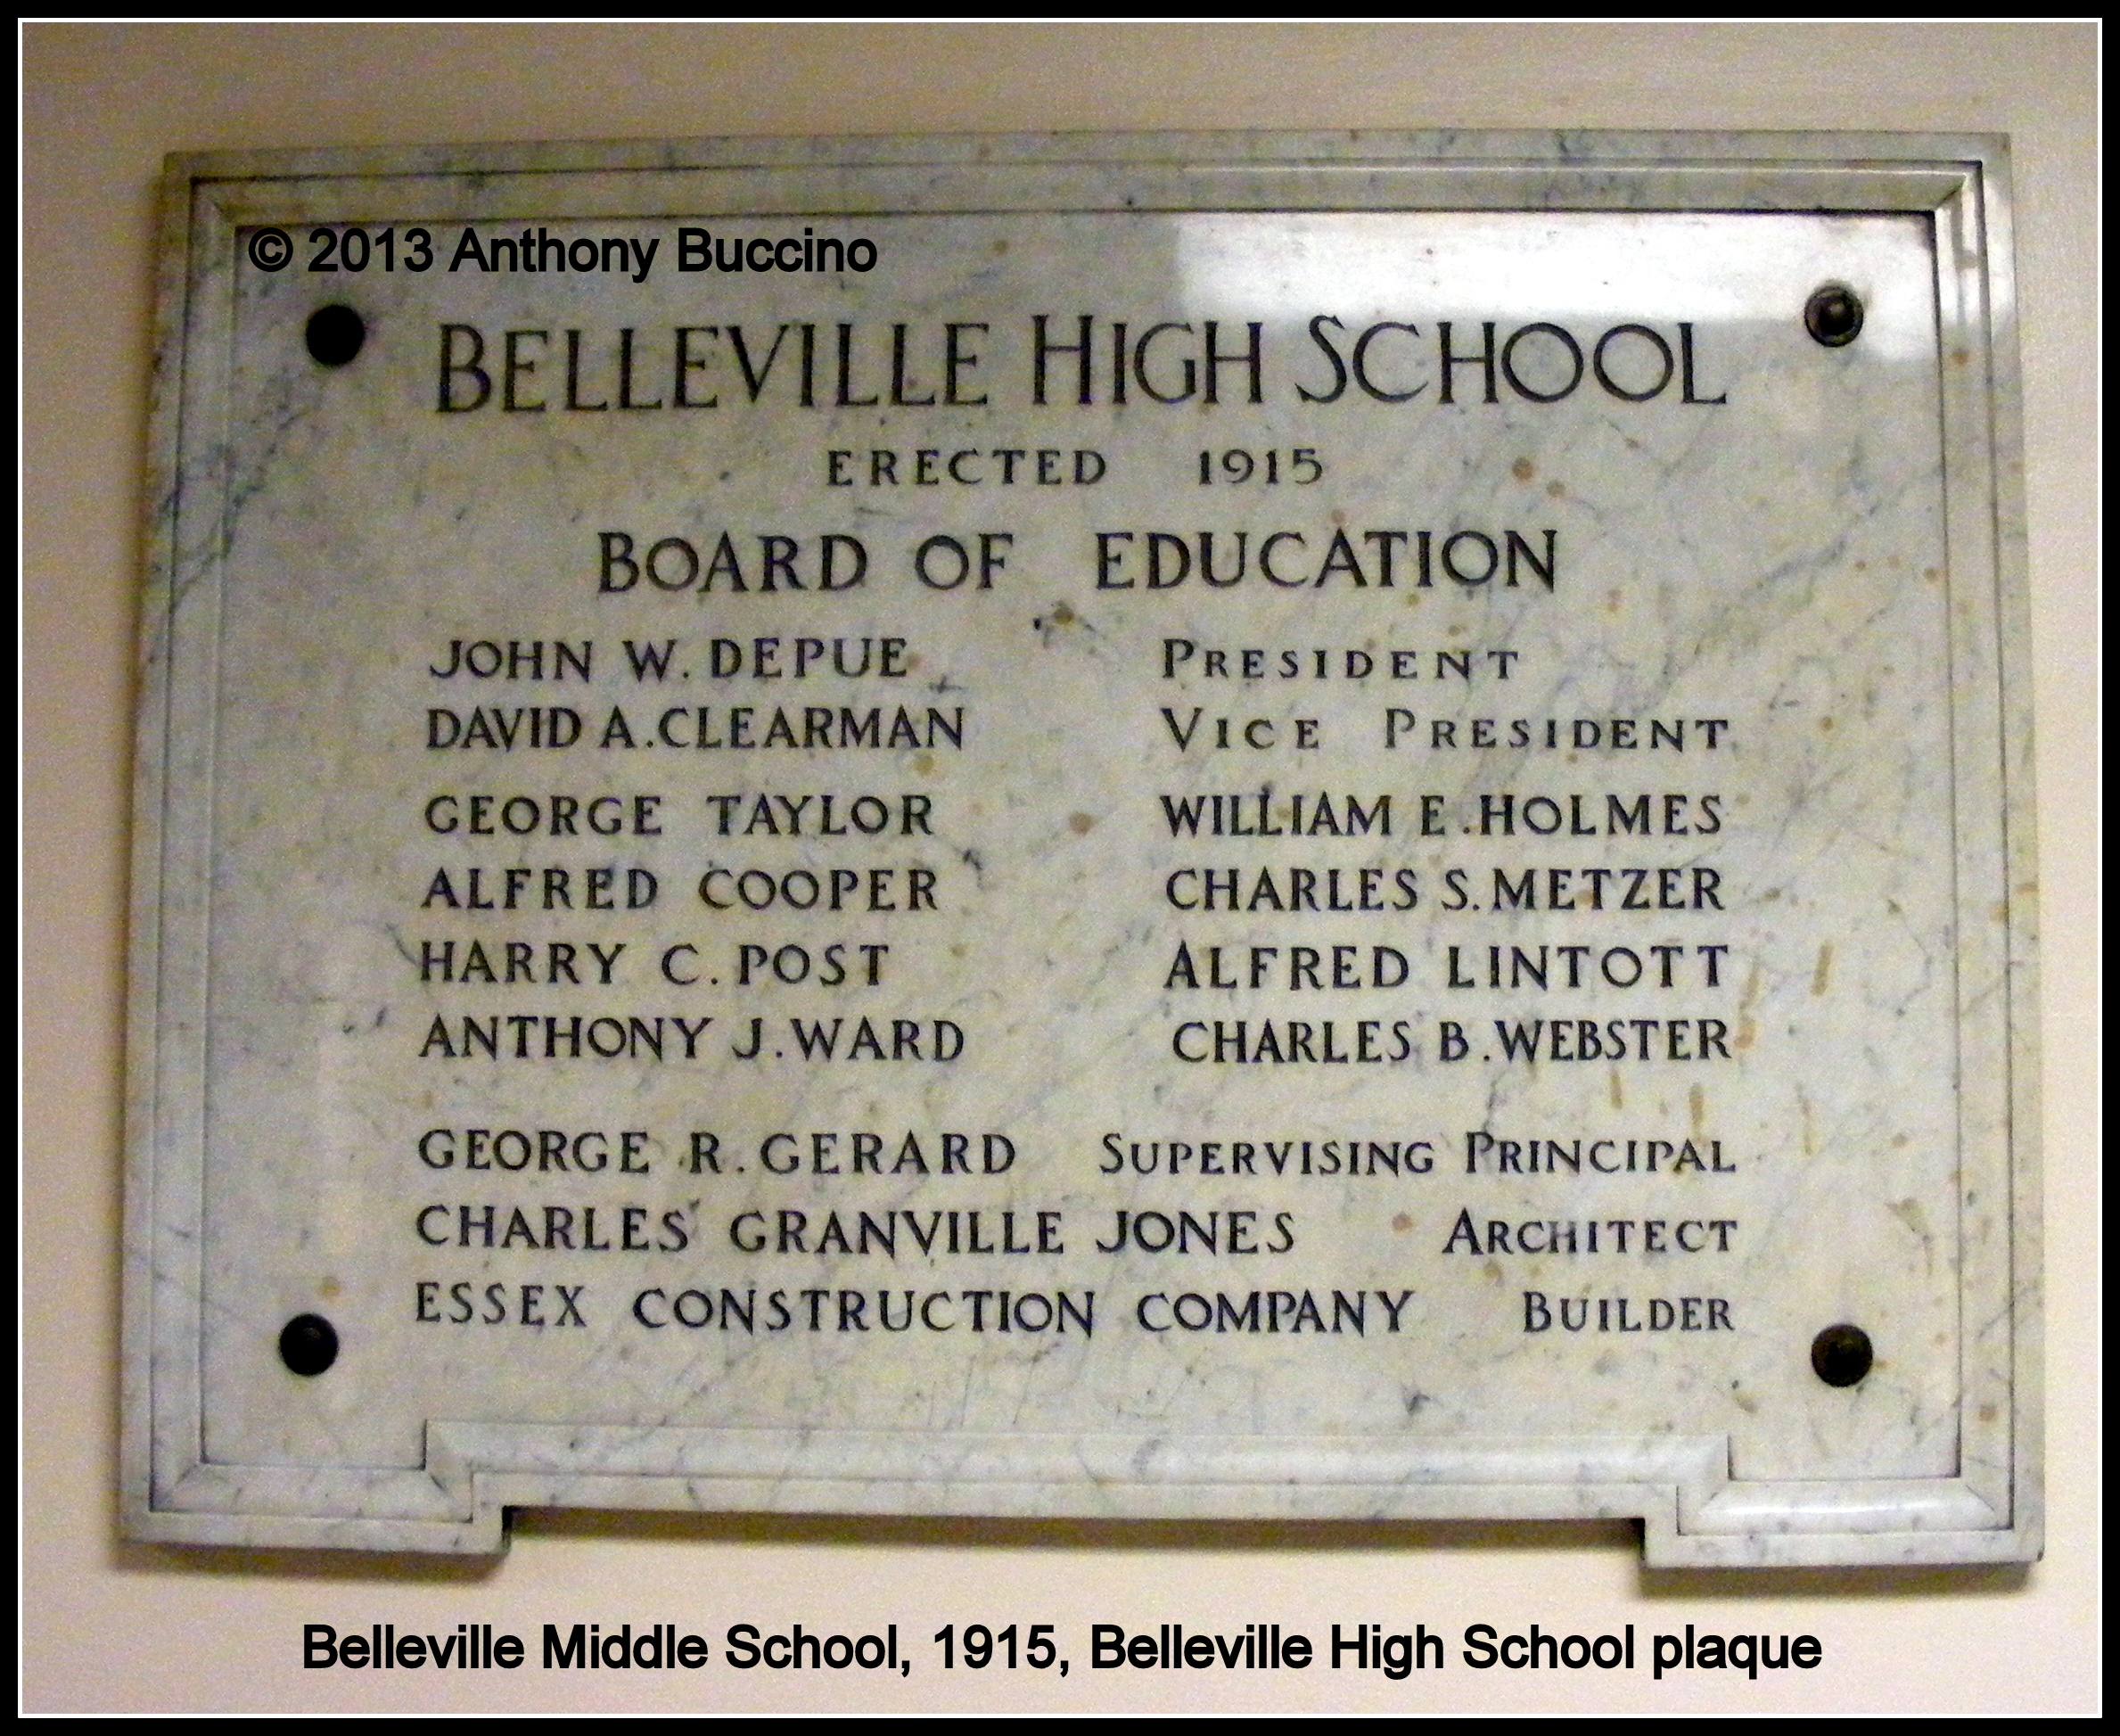 Belleville High School, built 1915, Belleville, NJ